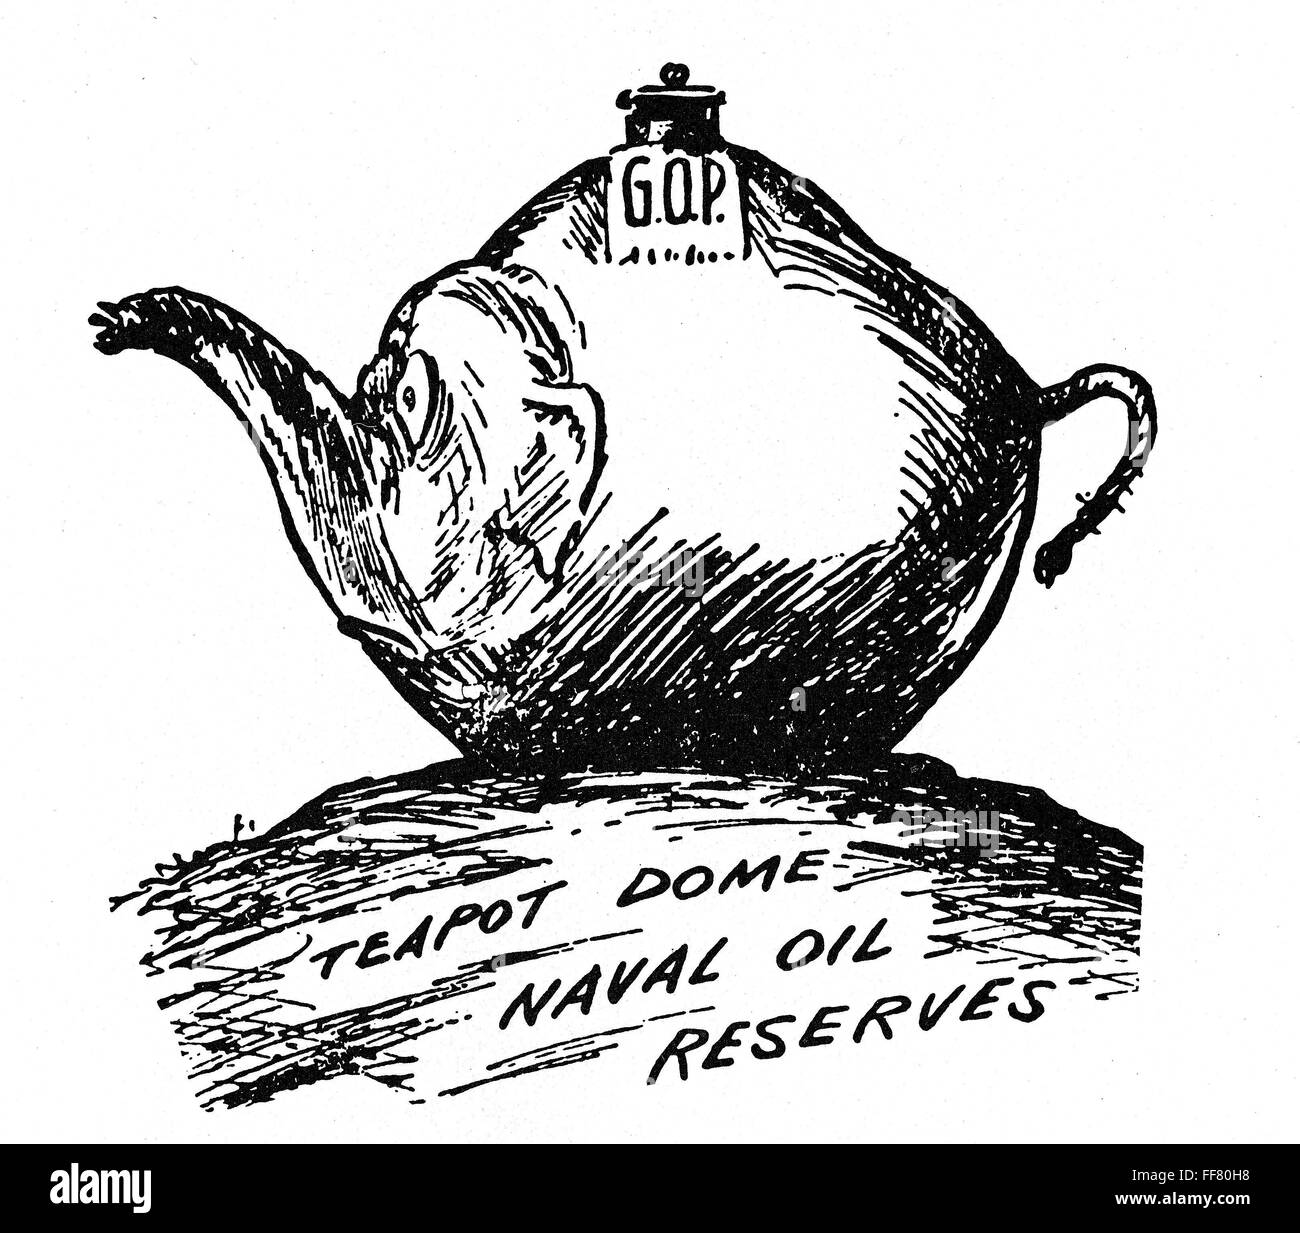 Teapot Dome Scandal Na Cartoon On The Teapot Dome Investigations